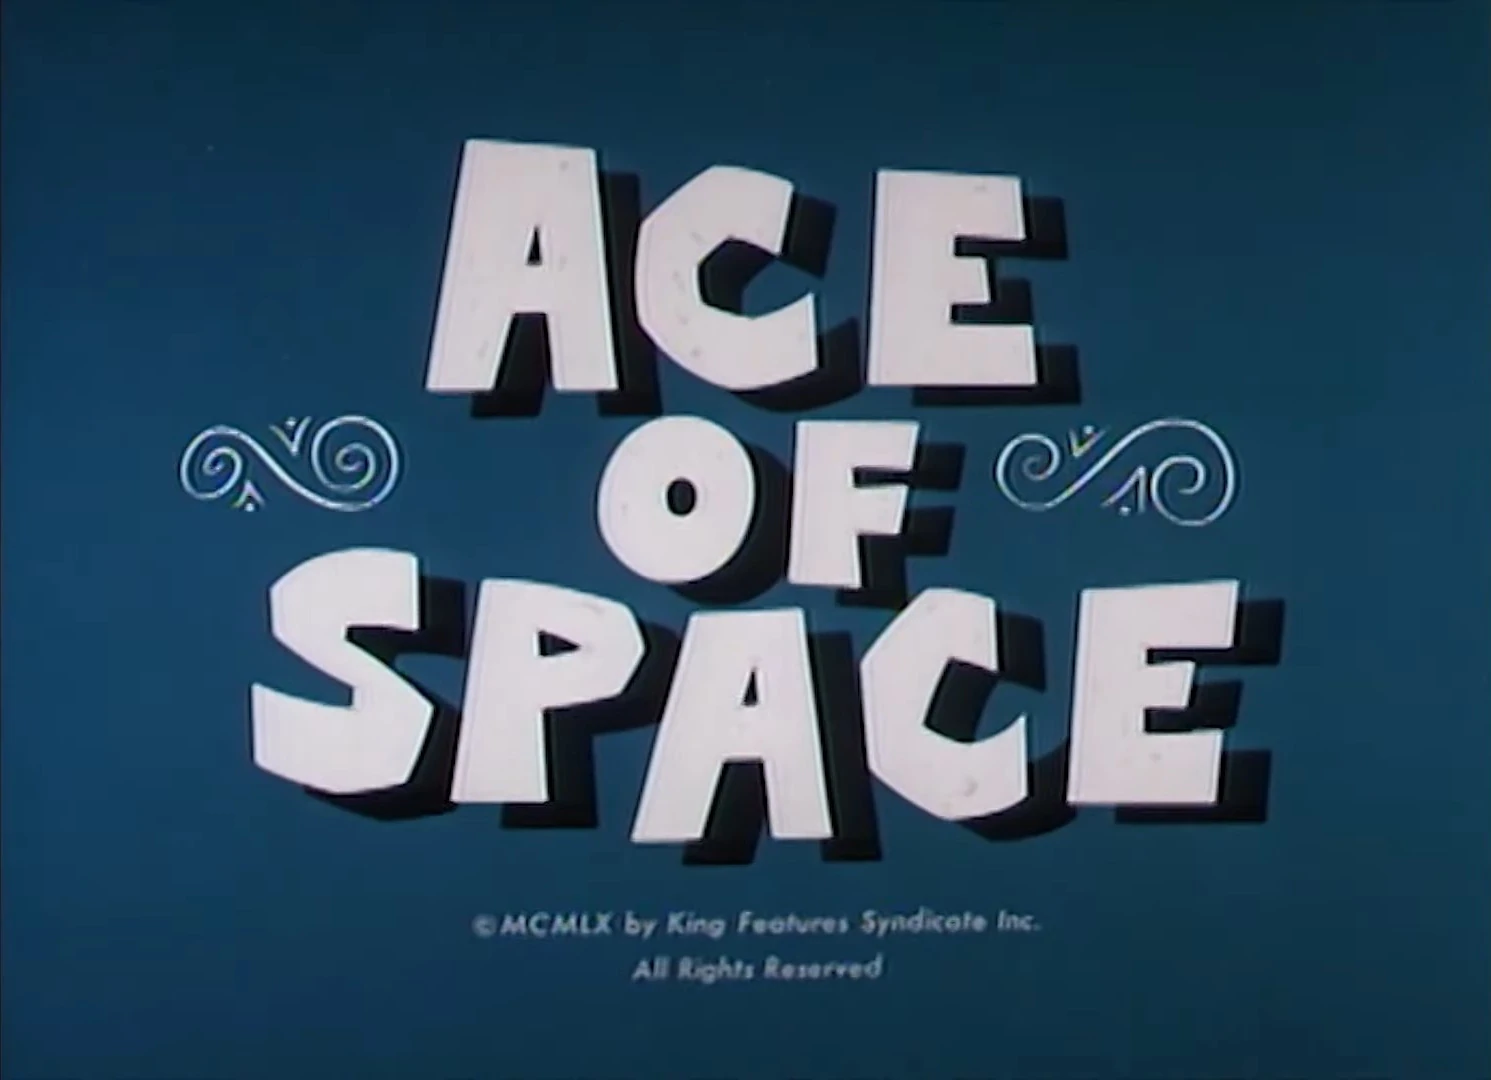 Ace of Space Credits